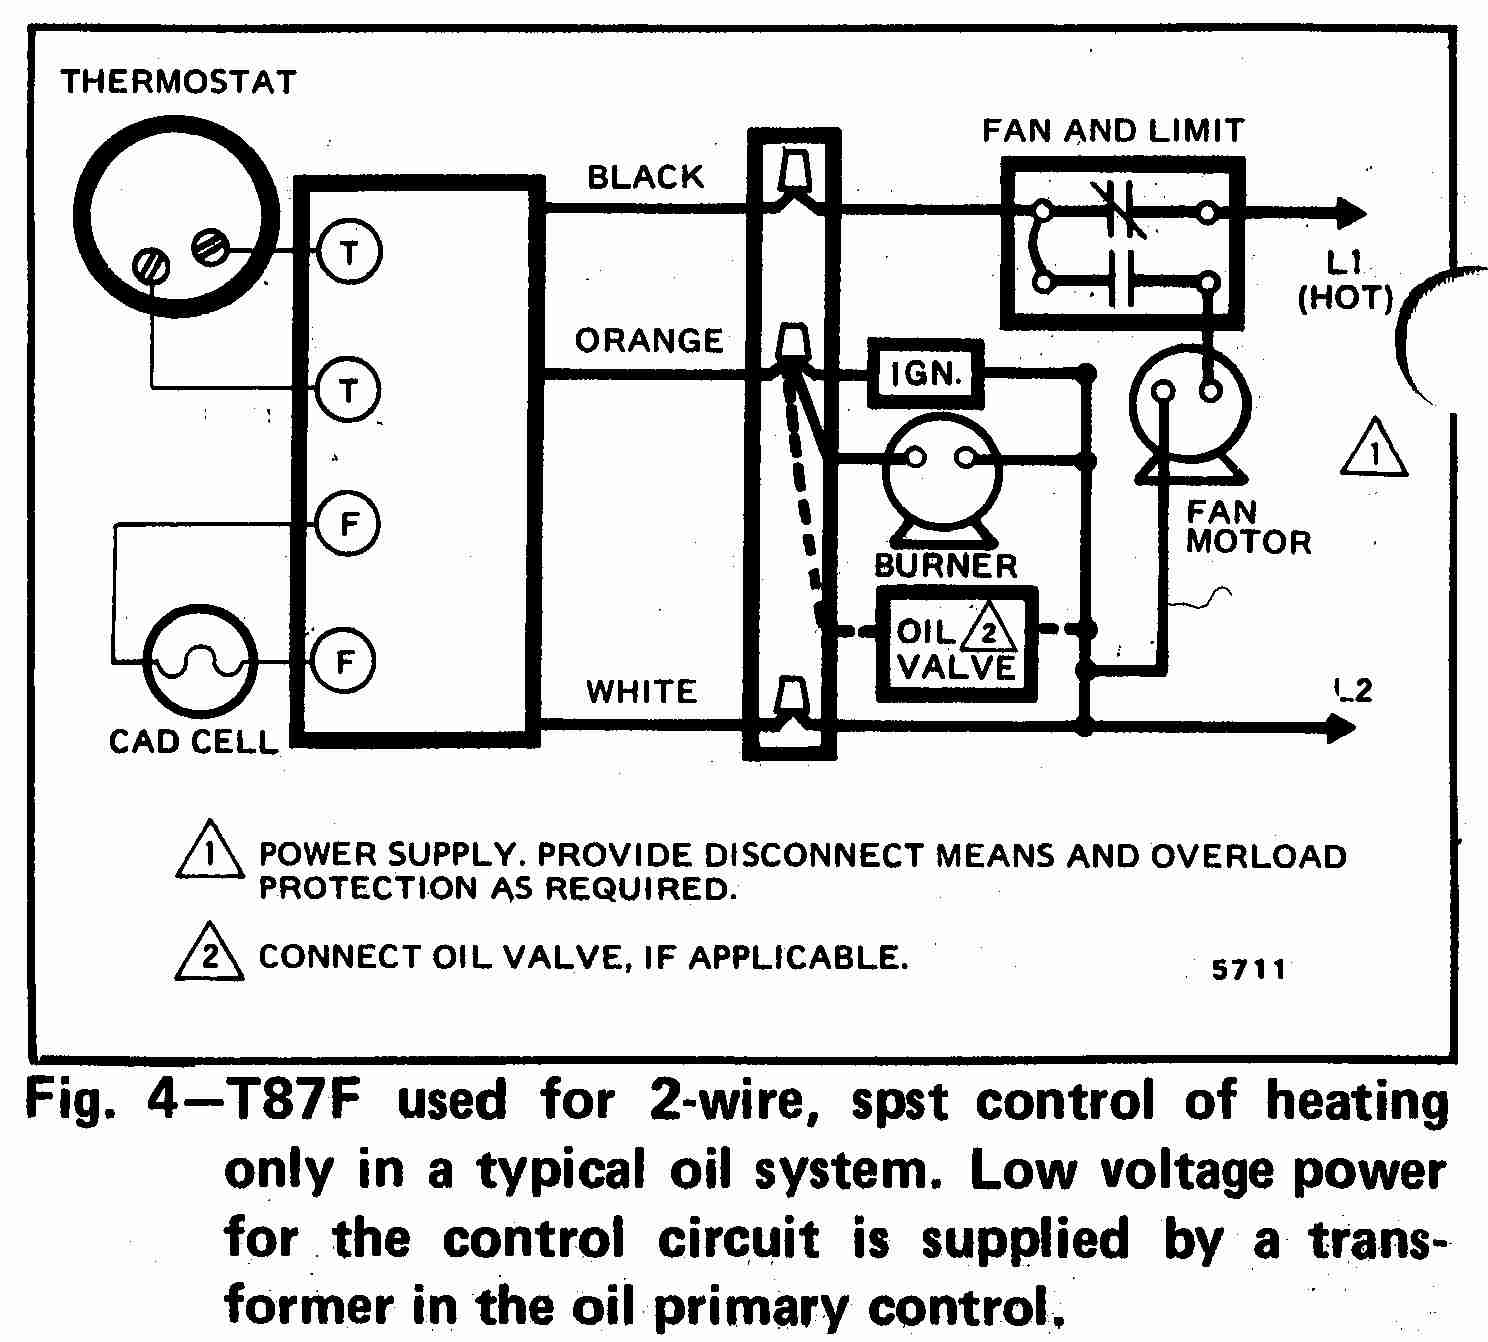 TT_T87F_0002_2W_DJF gas furnace wiring diagram 2006 gas furnace wiring diagram white-rodgers fan control center wiring diagram at pacquiaovsvargaslive.co